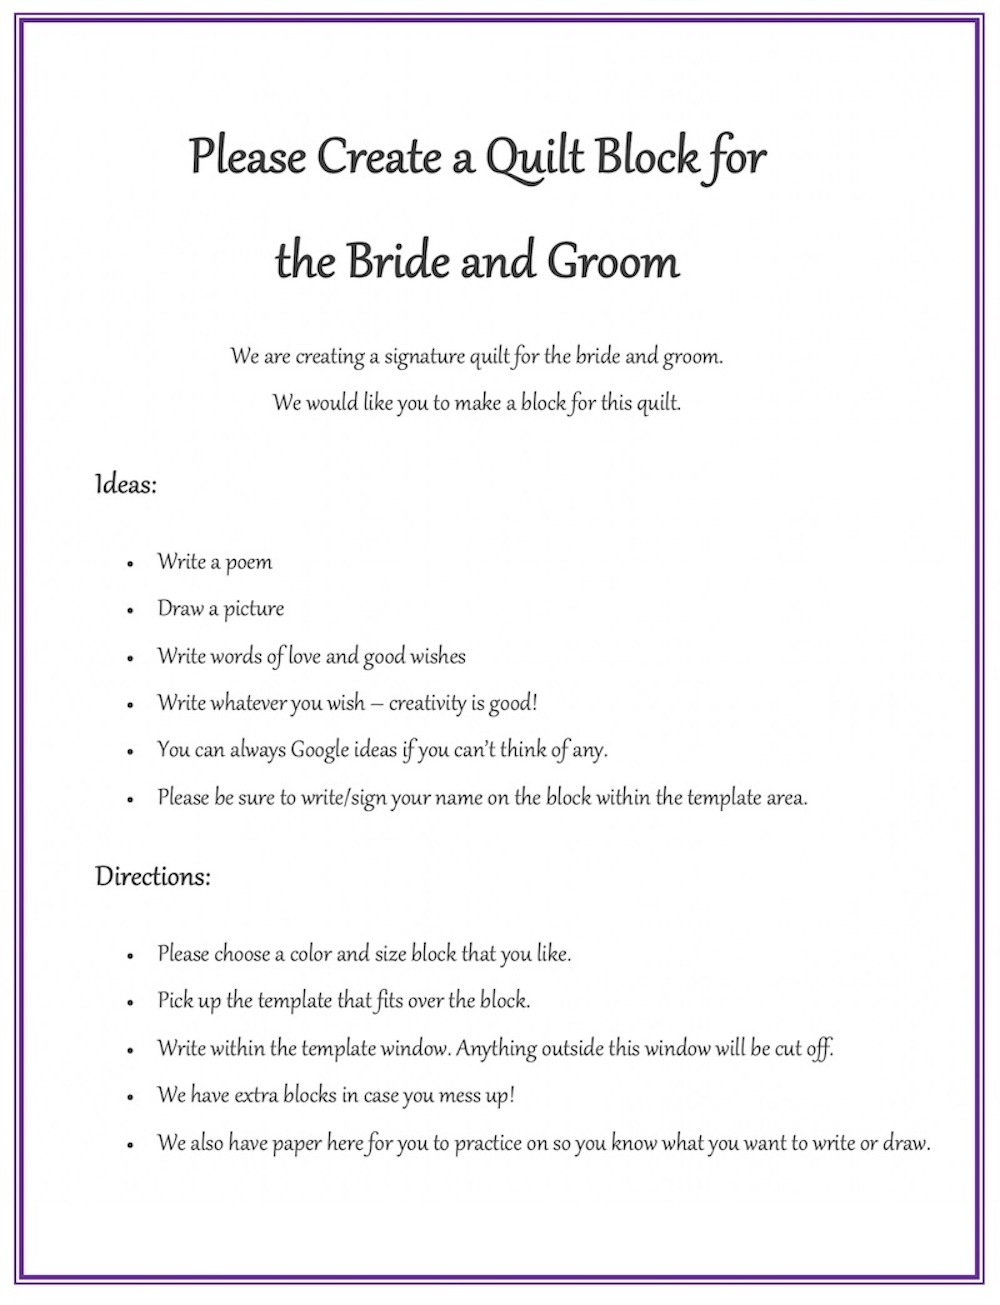 Wedding Quilt Directions example